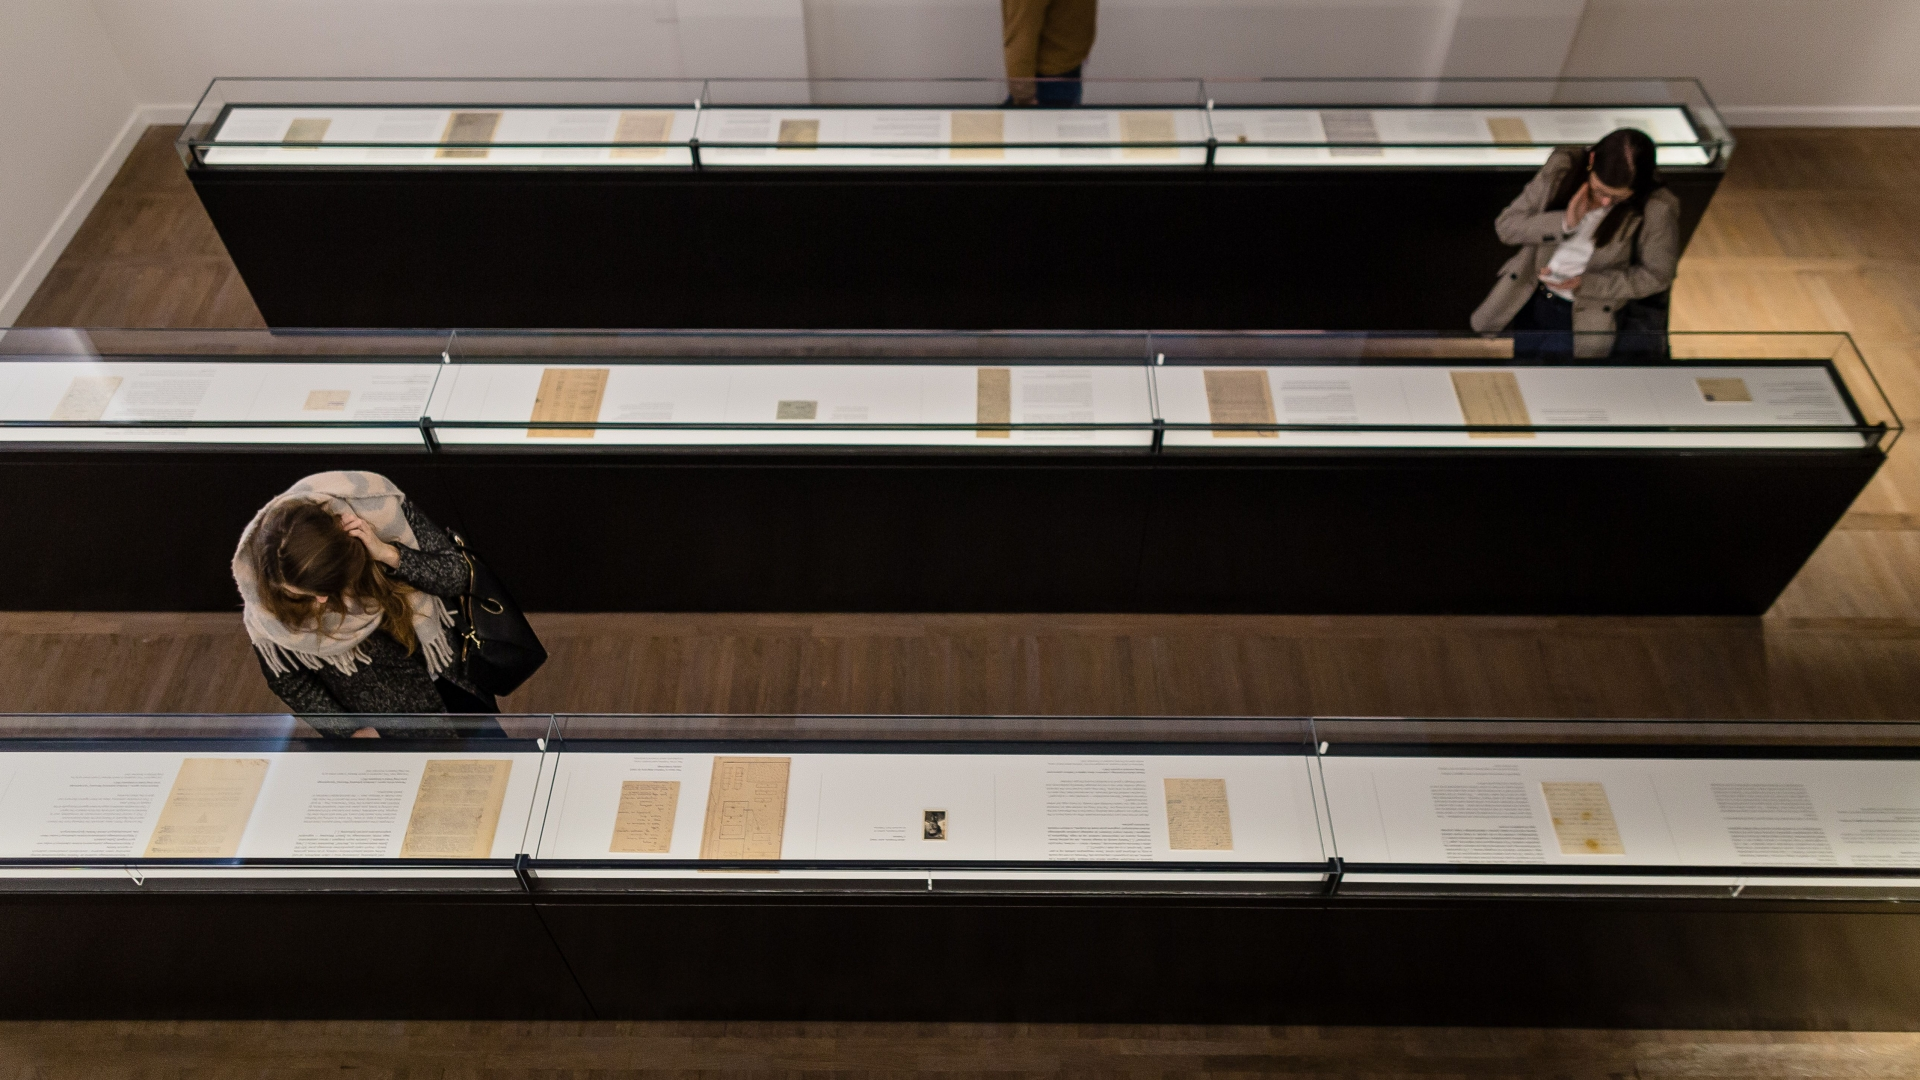 People visitng the Jewish Historical Institute in Warsaw, which includes a permanent exhibition titled 'What We Were Unable To Shout Out To The World' featuring the Ringelblum Archive. (Credit: Wojtek Radwanski/AFP/Getty Images)